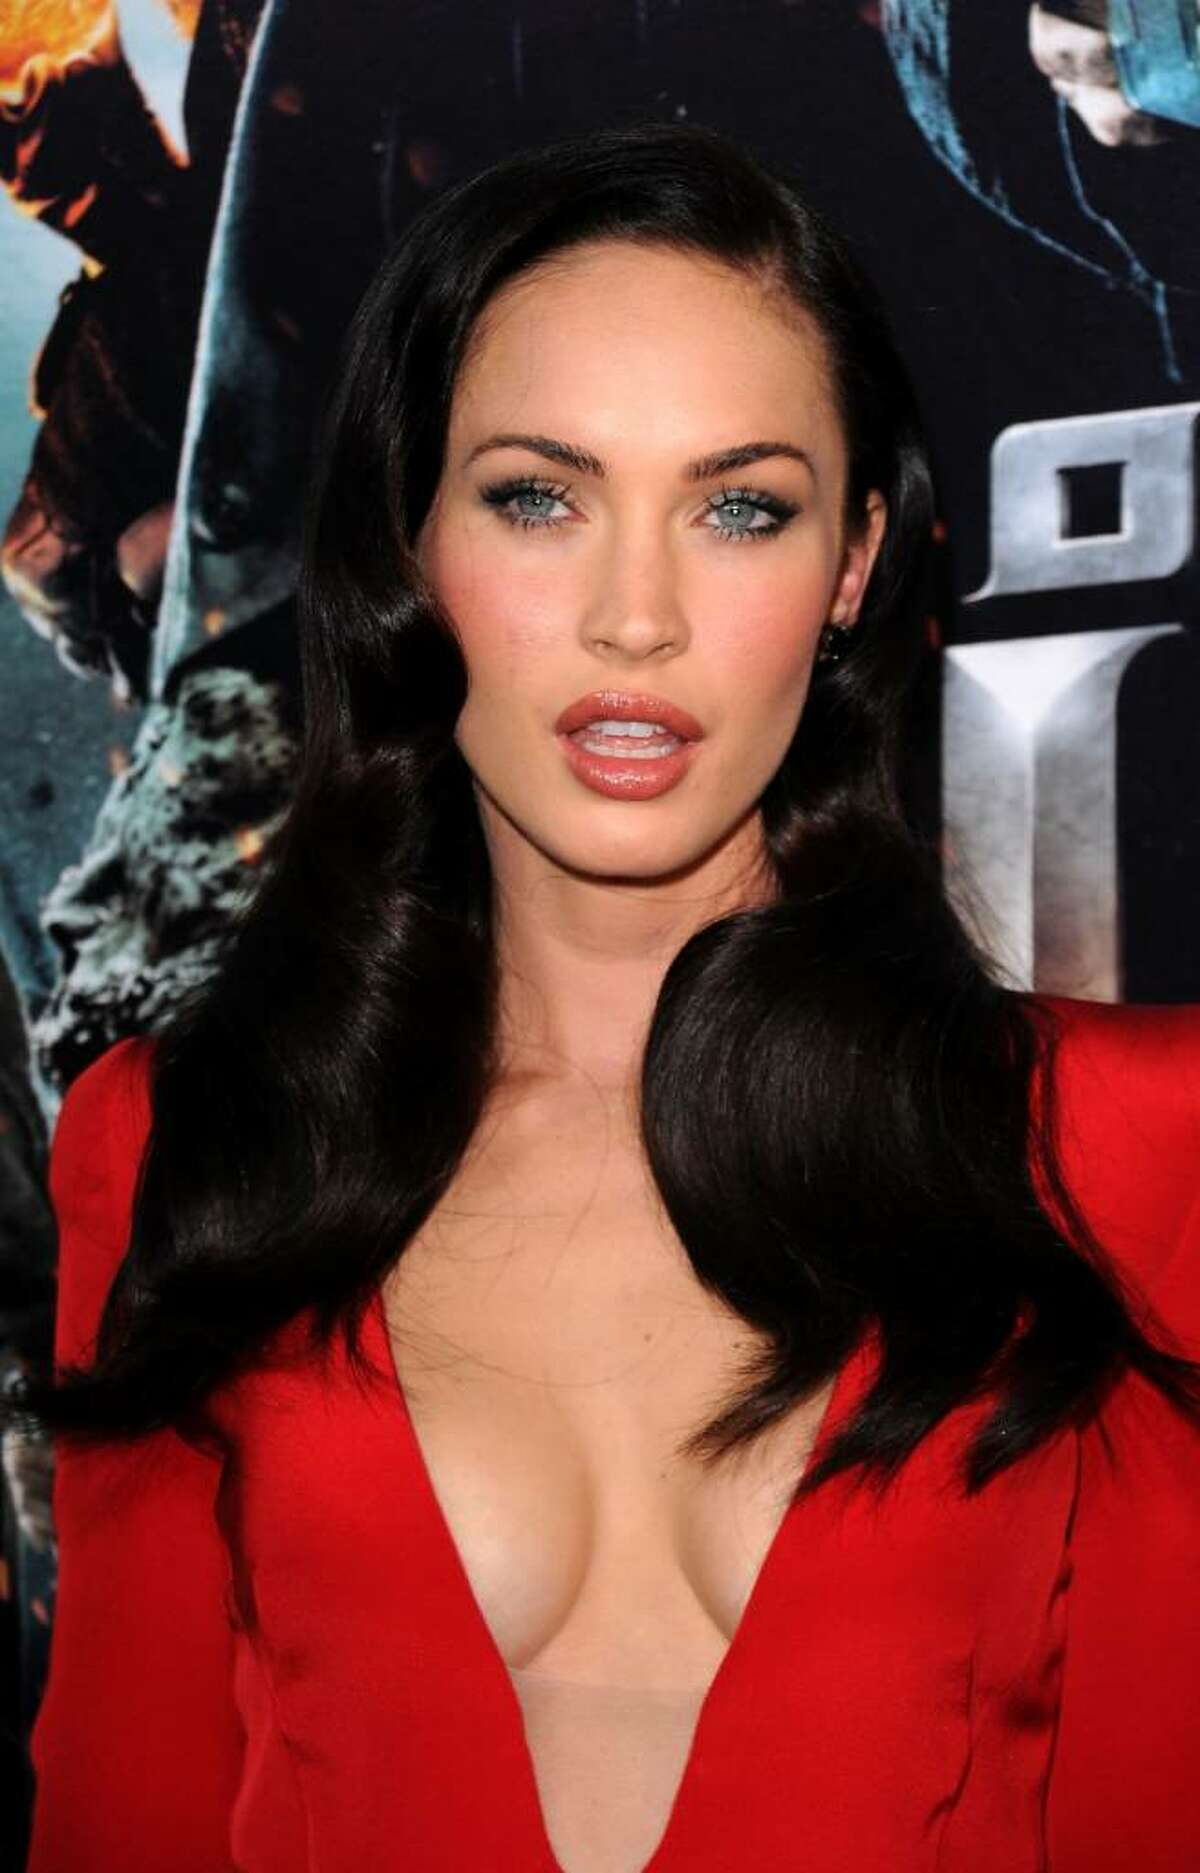 """HOLLYWOOD - JUNE 17: Actress Megan Fox arrives at premiere of Warner Bros. """"Jonah Hex"""" held at ArcLight Cinema's Cinerama Dome on June 17, 2010 in Hollywood, California. (Photo by Jason Merritt/Getty Images) *** Local Caption *** Megan Fox"""